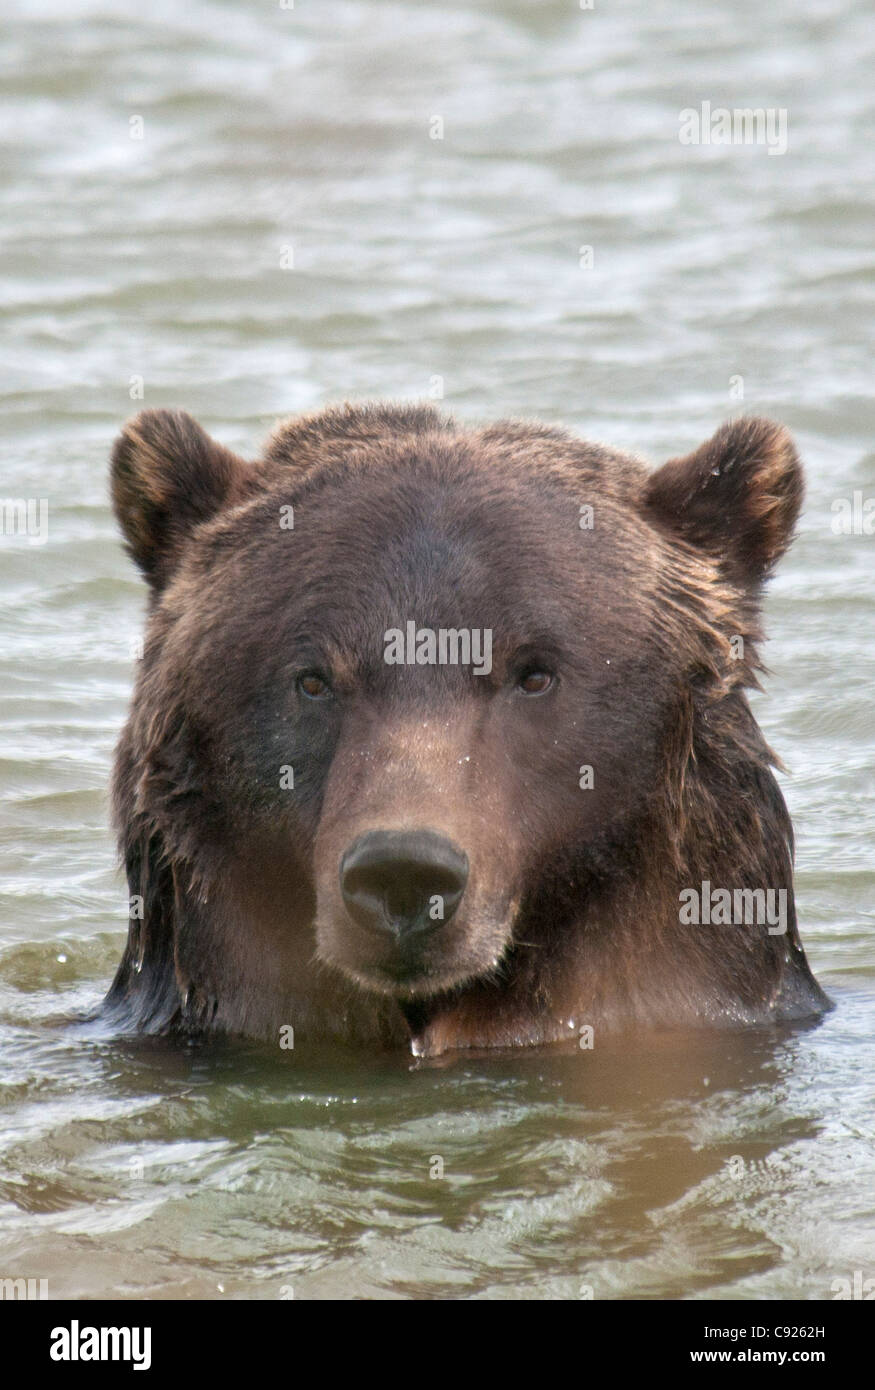 Close up of a Brown Bear in a pond at the Alaska Wildlife Conservation Center, Southcentral Alaska, Summer. Captive - Stock Image